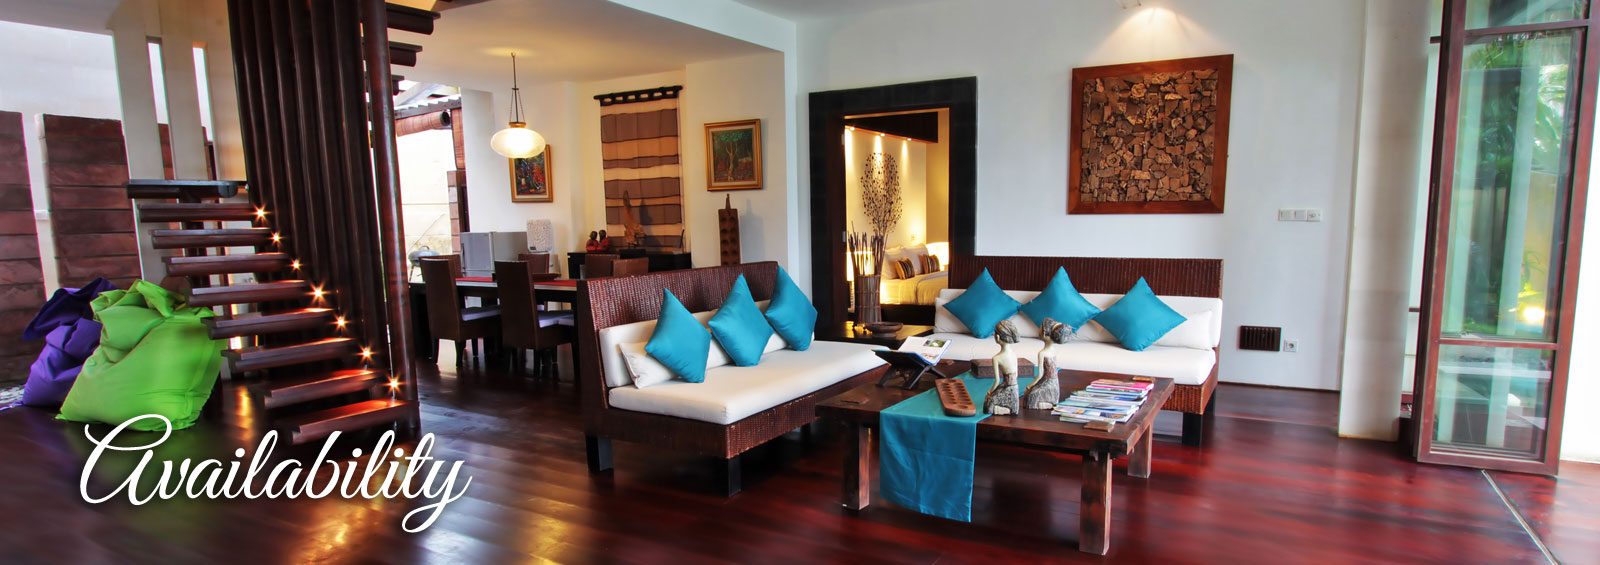 Villa Samudra Availability Calendar, Best Wedding Beachfront Villa in Bali, Wedding Packages Beachfront Villa in Bali